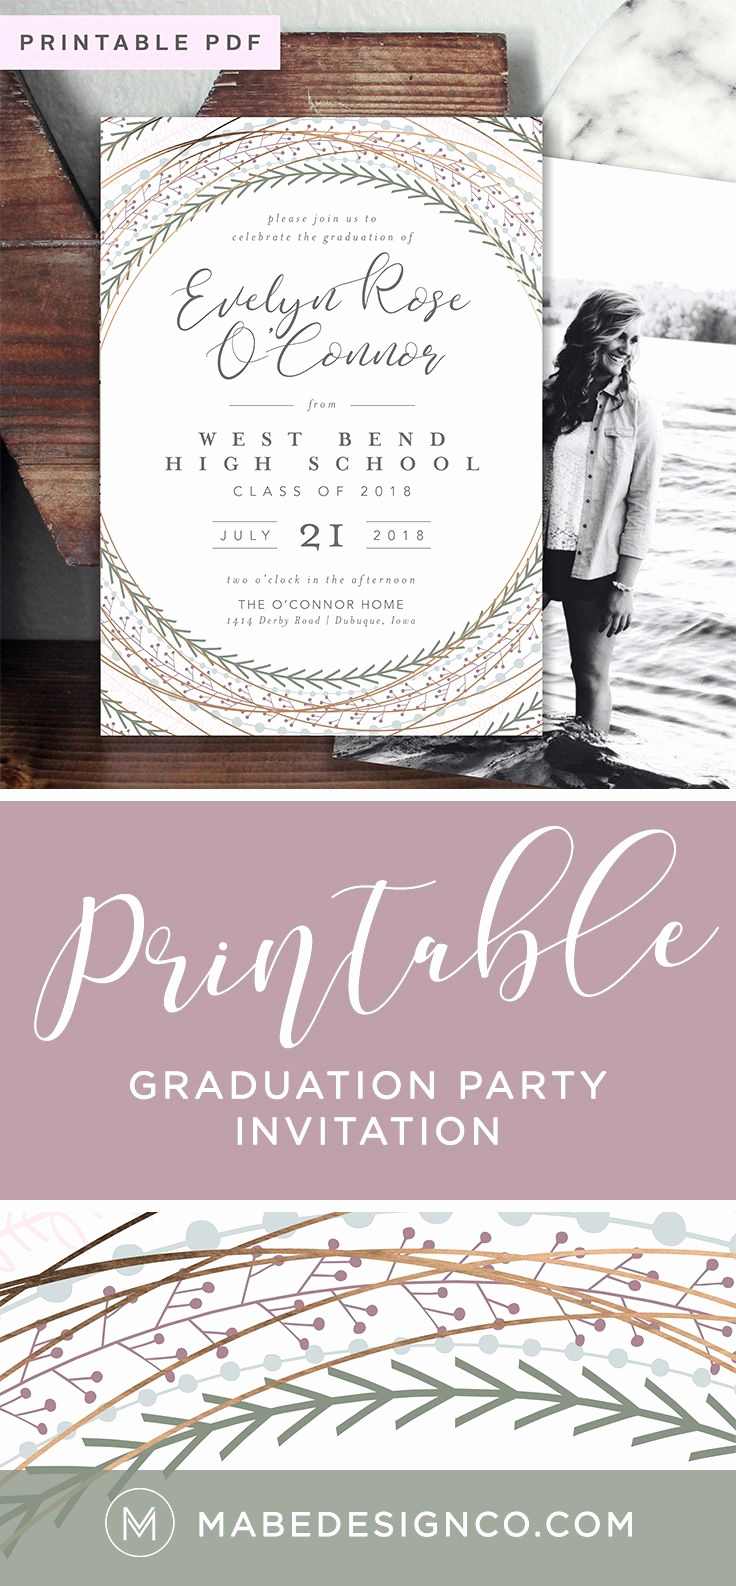 Graduation Open House Invitation Templates Best Of Best 25 Graduation Invitation Wording Ideas On Pinterest